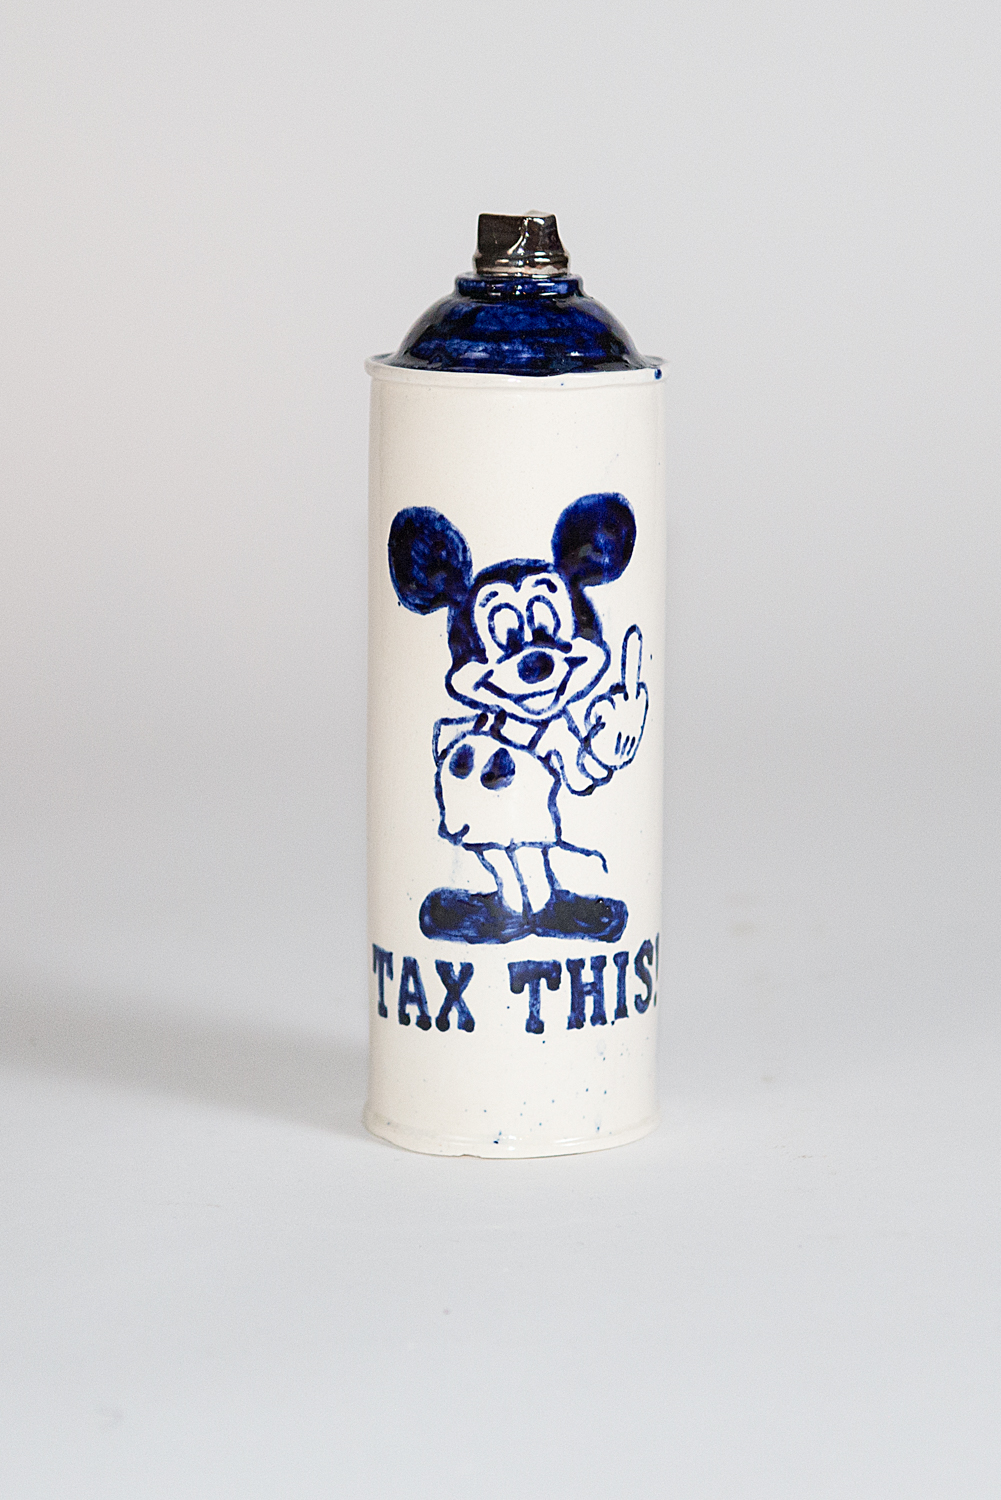 "Jesse Edwards  Untitled Spray Can   IX  (2018) Ceramic, delft blue, over and under glaze 2.75"" x 2.75"" x 9""  INQUIRE"